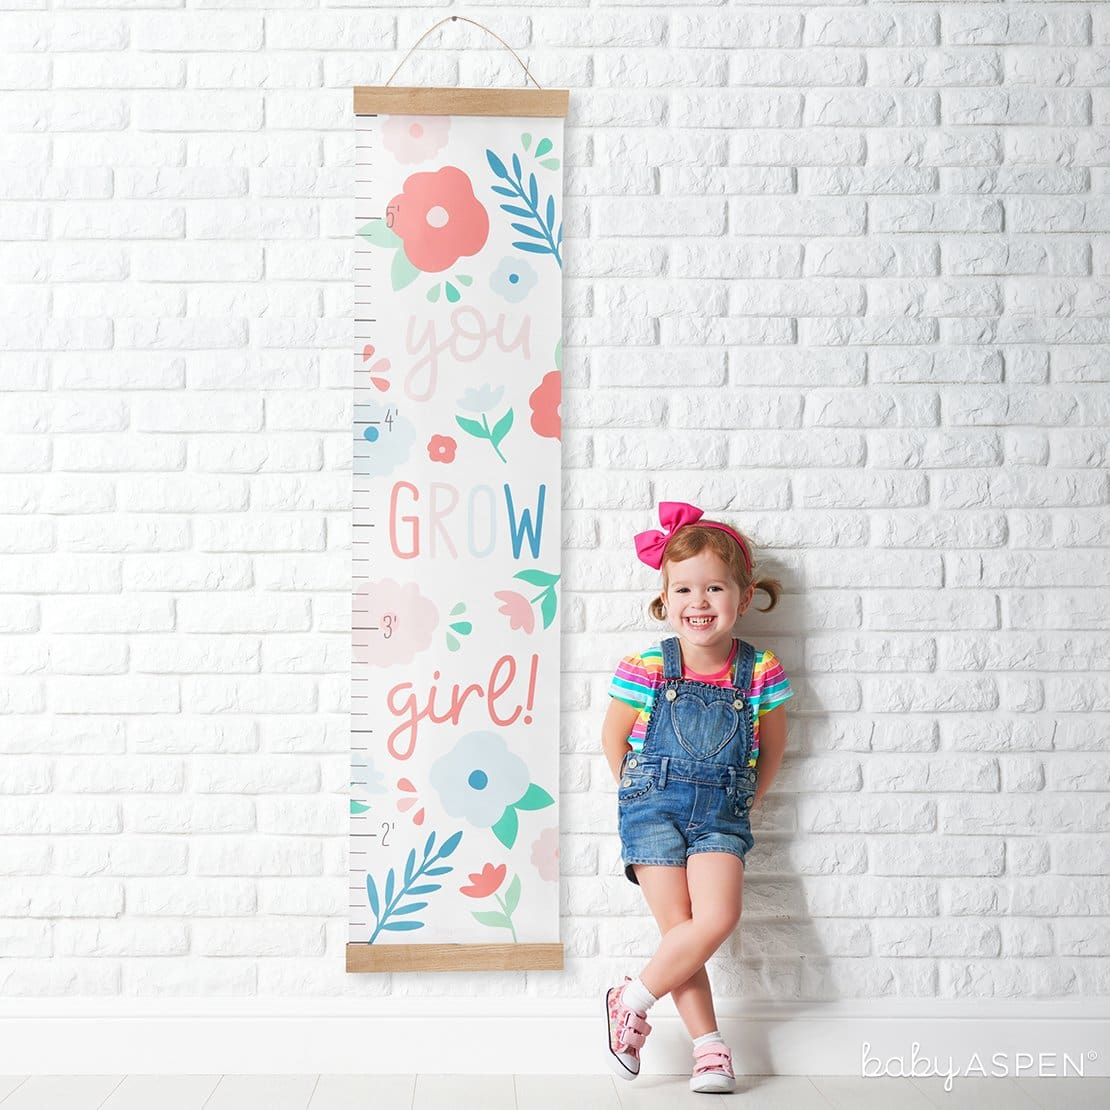 | 7 Easy Room Decor From Baby to Toddler | Baby AspenYou Grow Girl Growth Chart